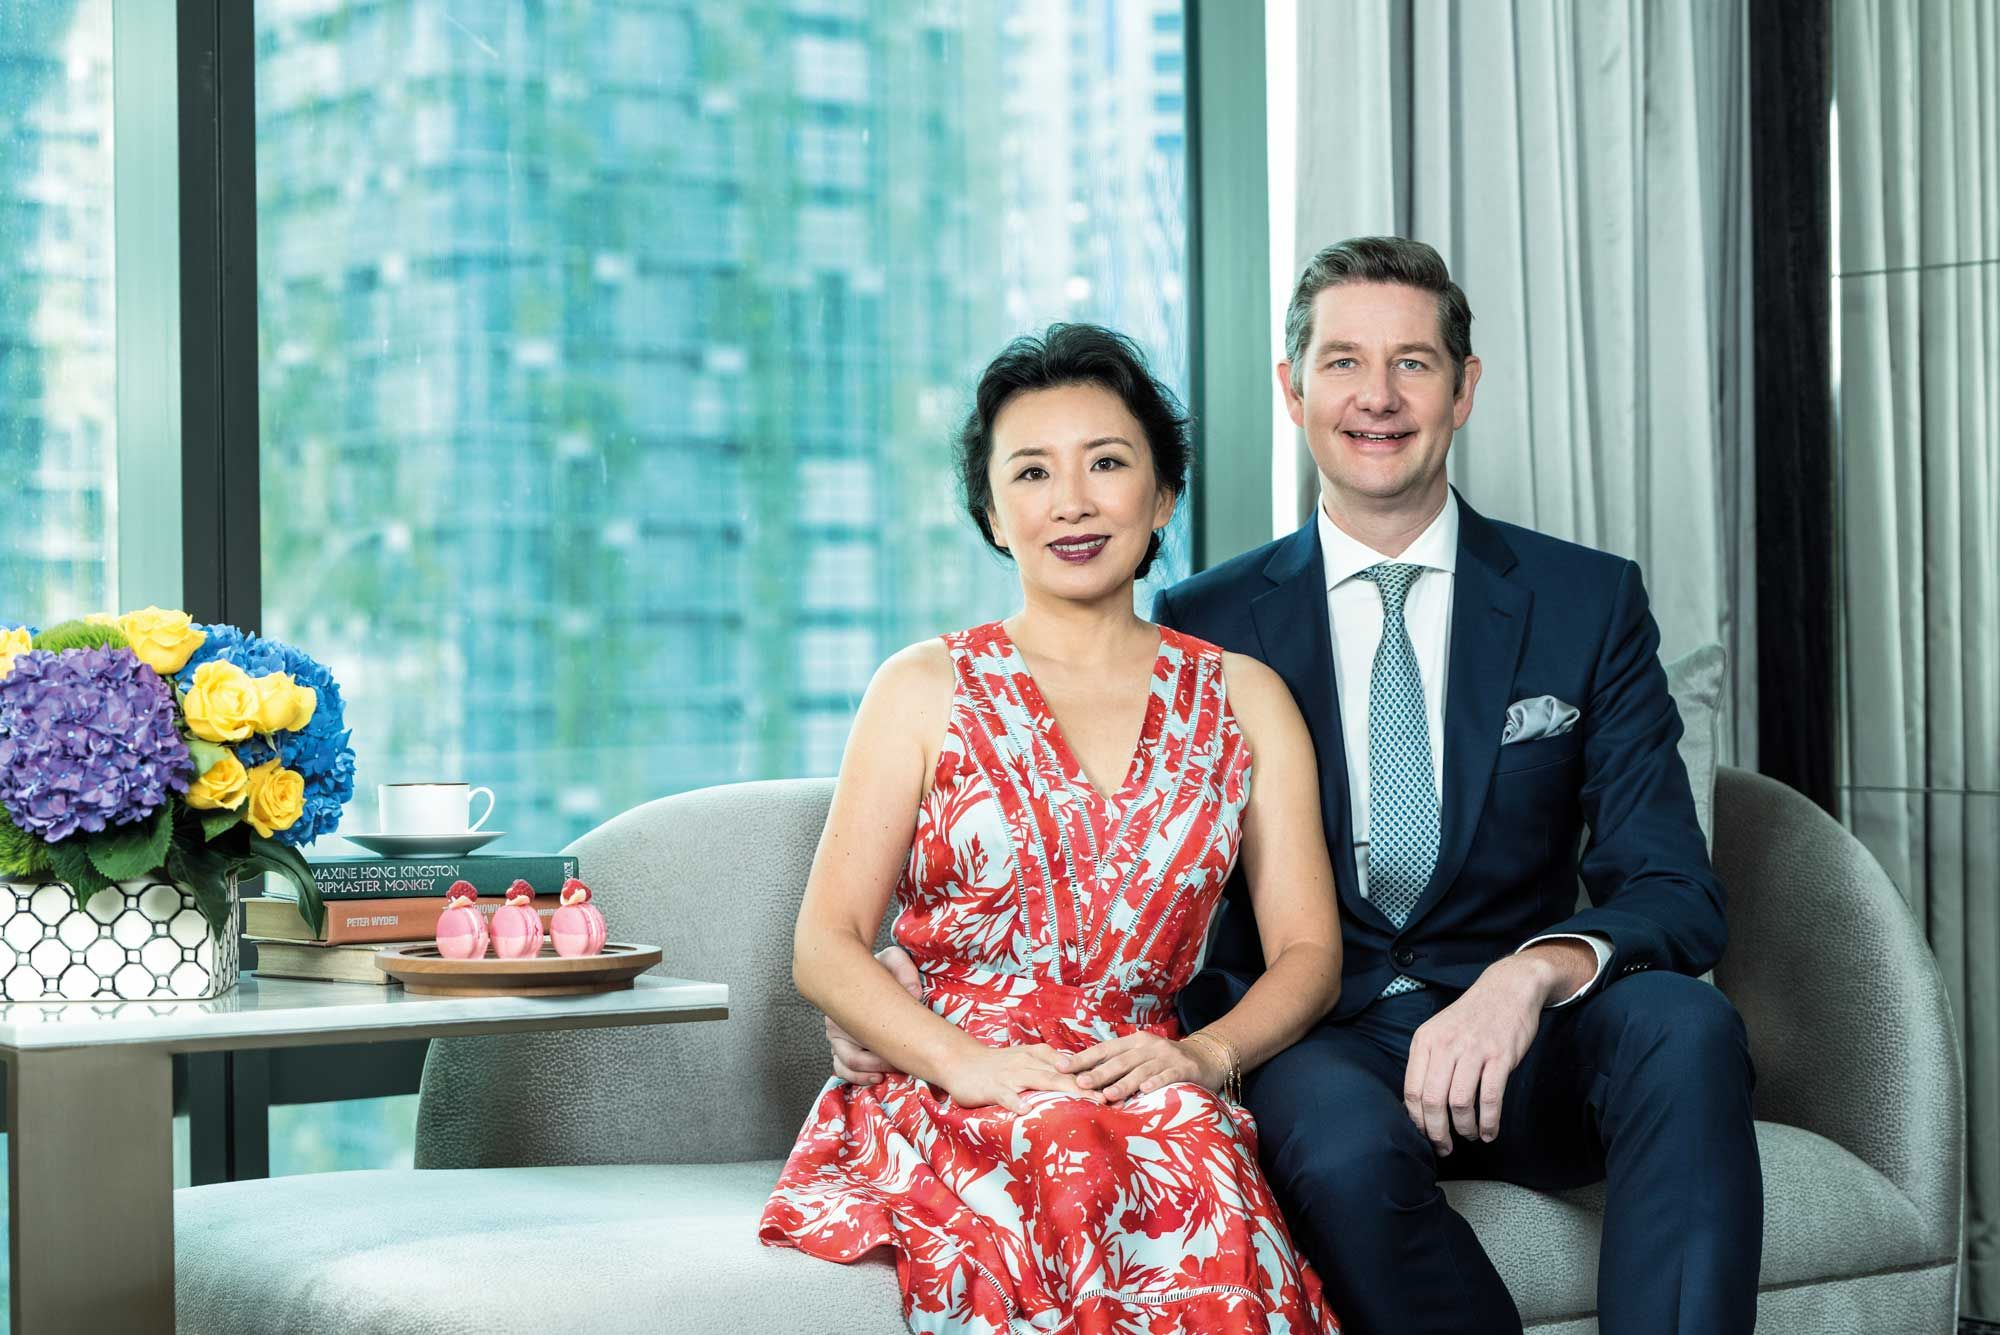 Sara and Tom Roelens at the Four Seasons Hotel and Residences Kuala Lumpur. Photo: Chris Jung/Malaysia Tatler